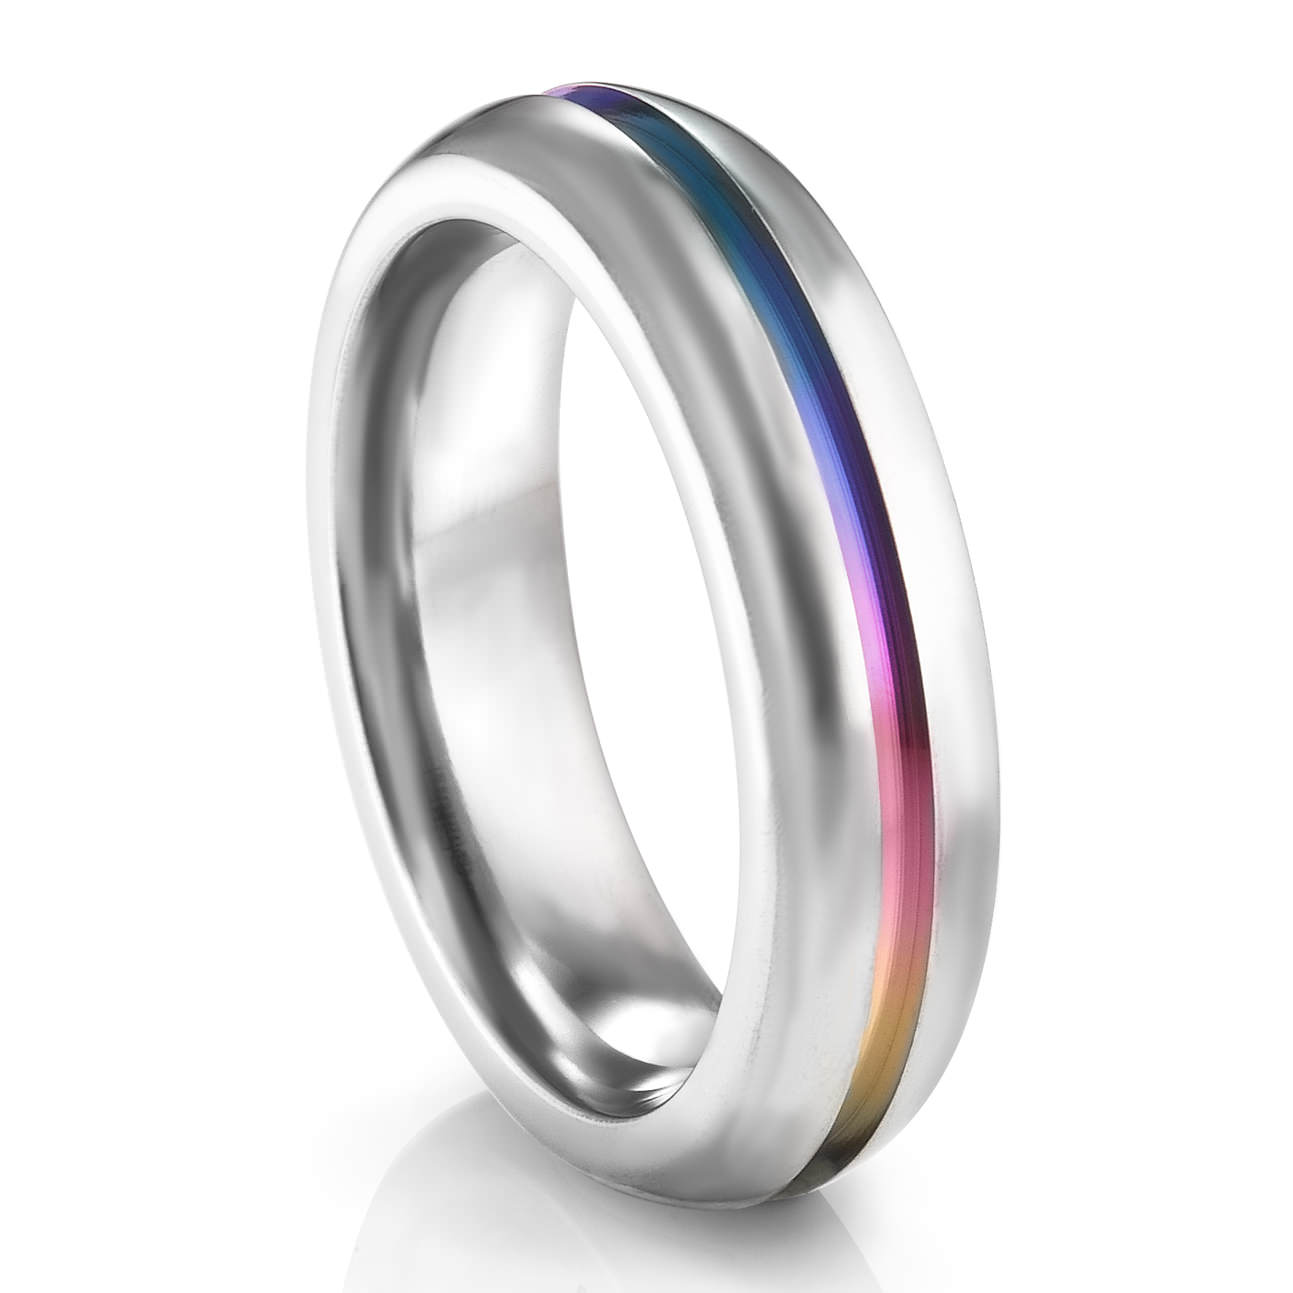 6mm rounded titanium rainbow ring edward mirell rainbow collection - Rainbow Wedding Rings